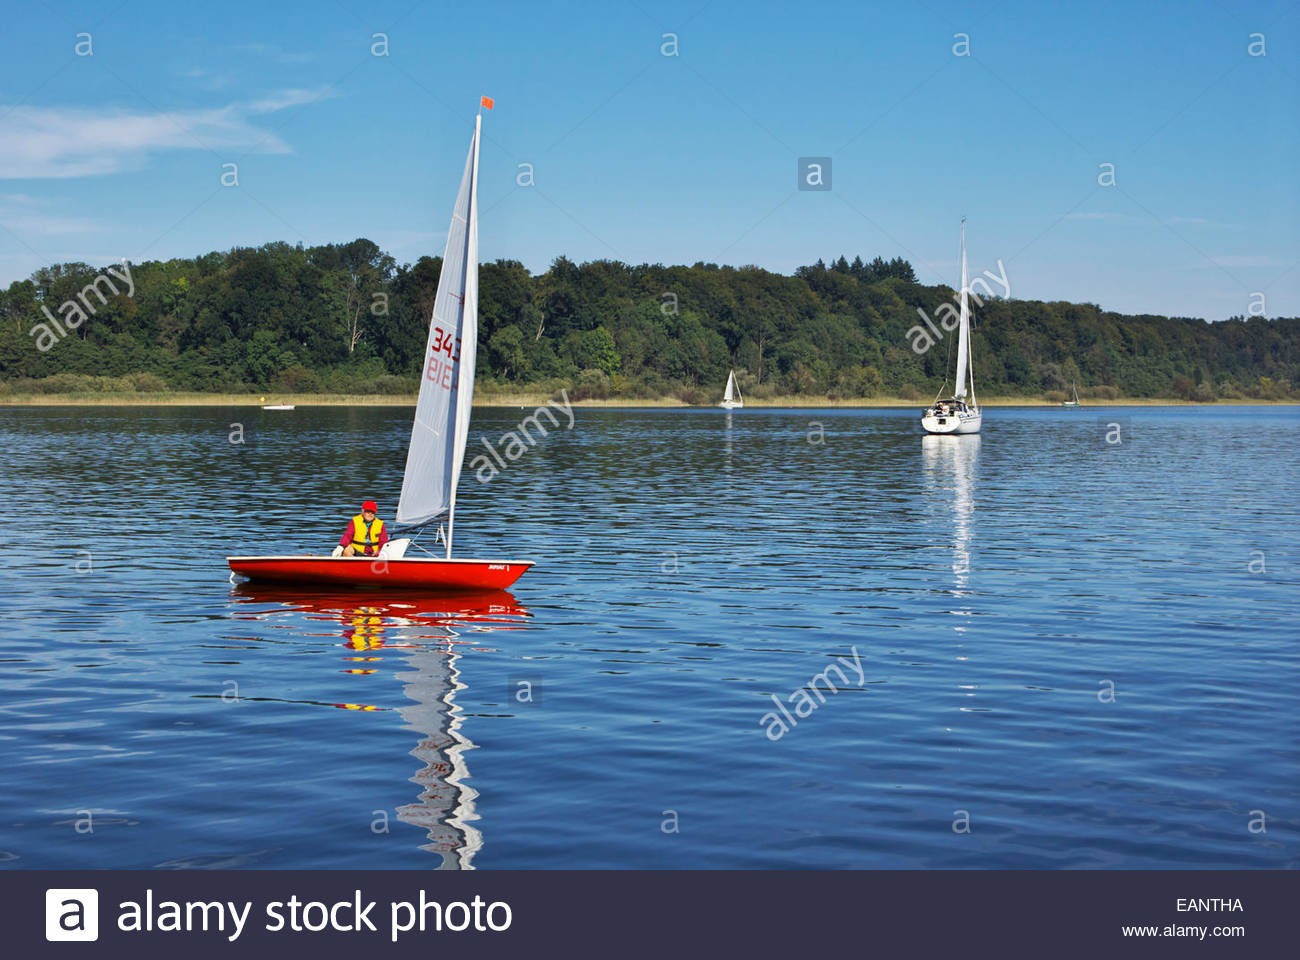 Small and medium size sailboats ply the waters of the Chiemsee, or Bavarian Sea. - Stock Image